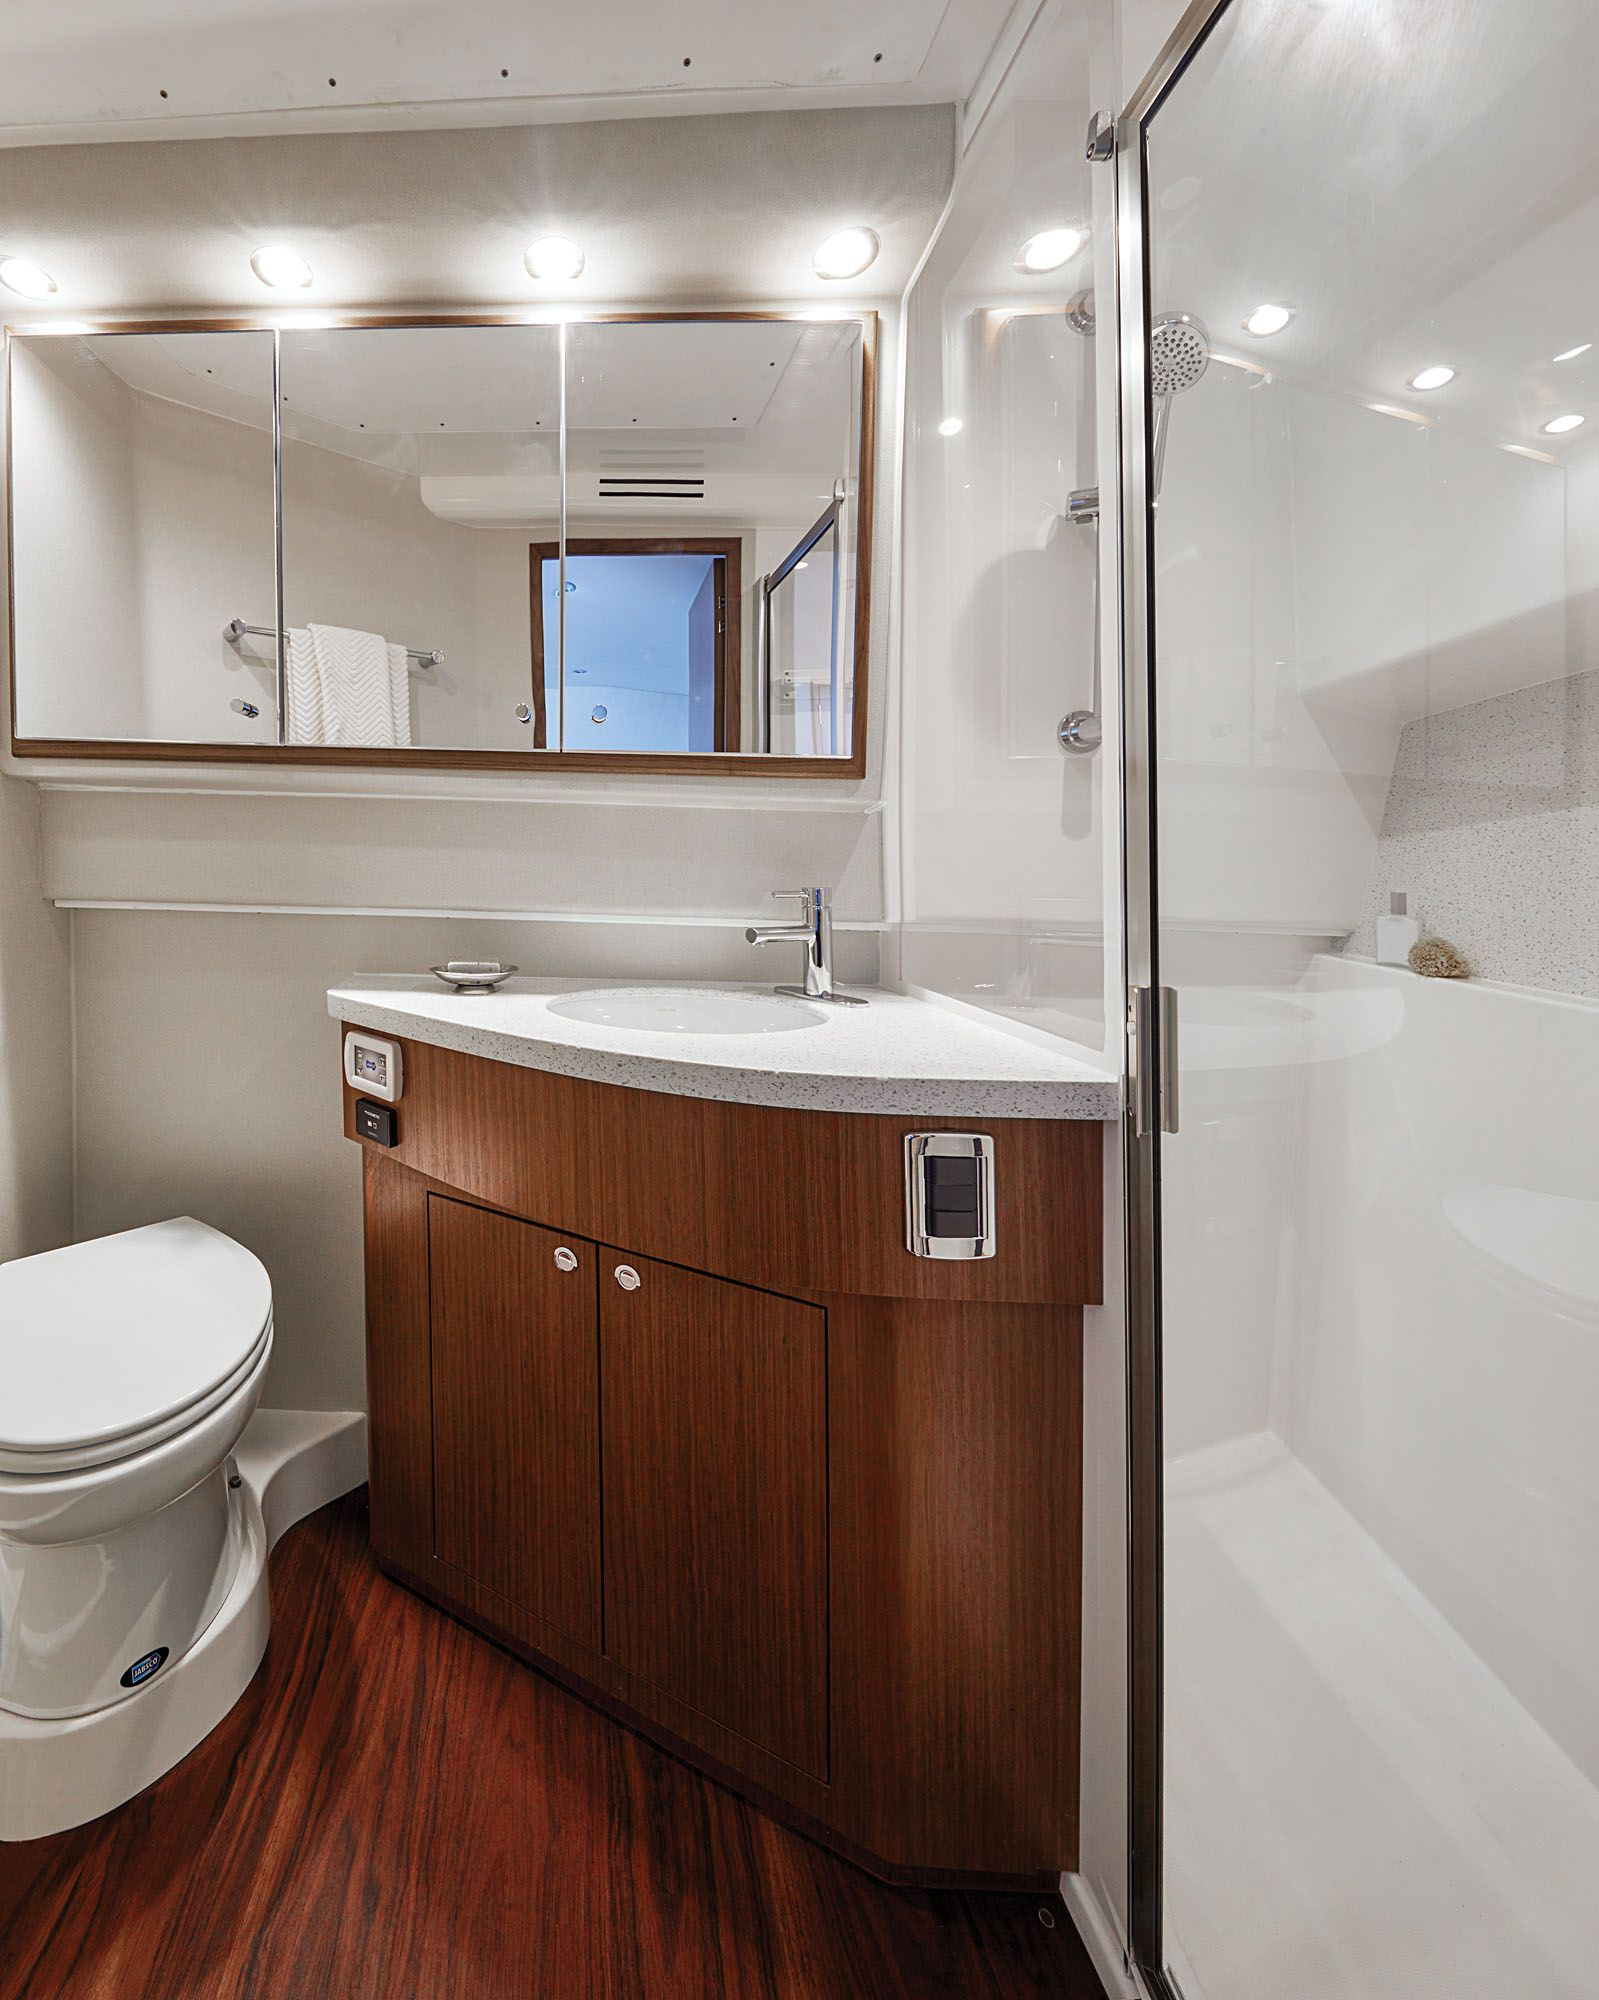 The head compartment offers an enclosed shower, a sink and vanity, and a flush toilet.